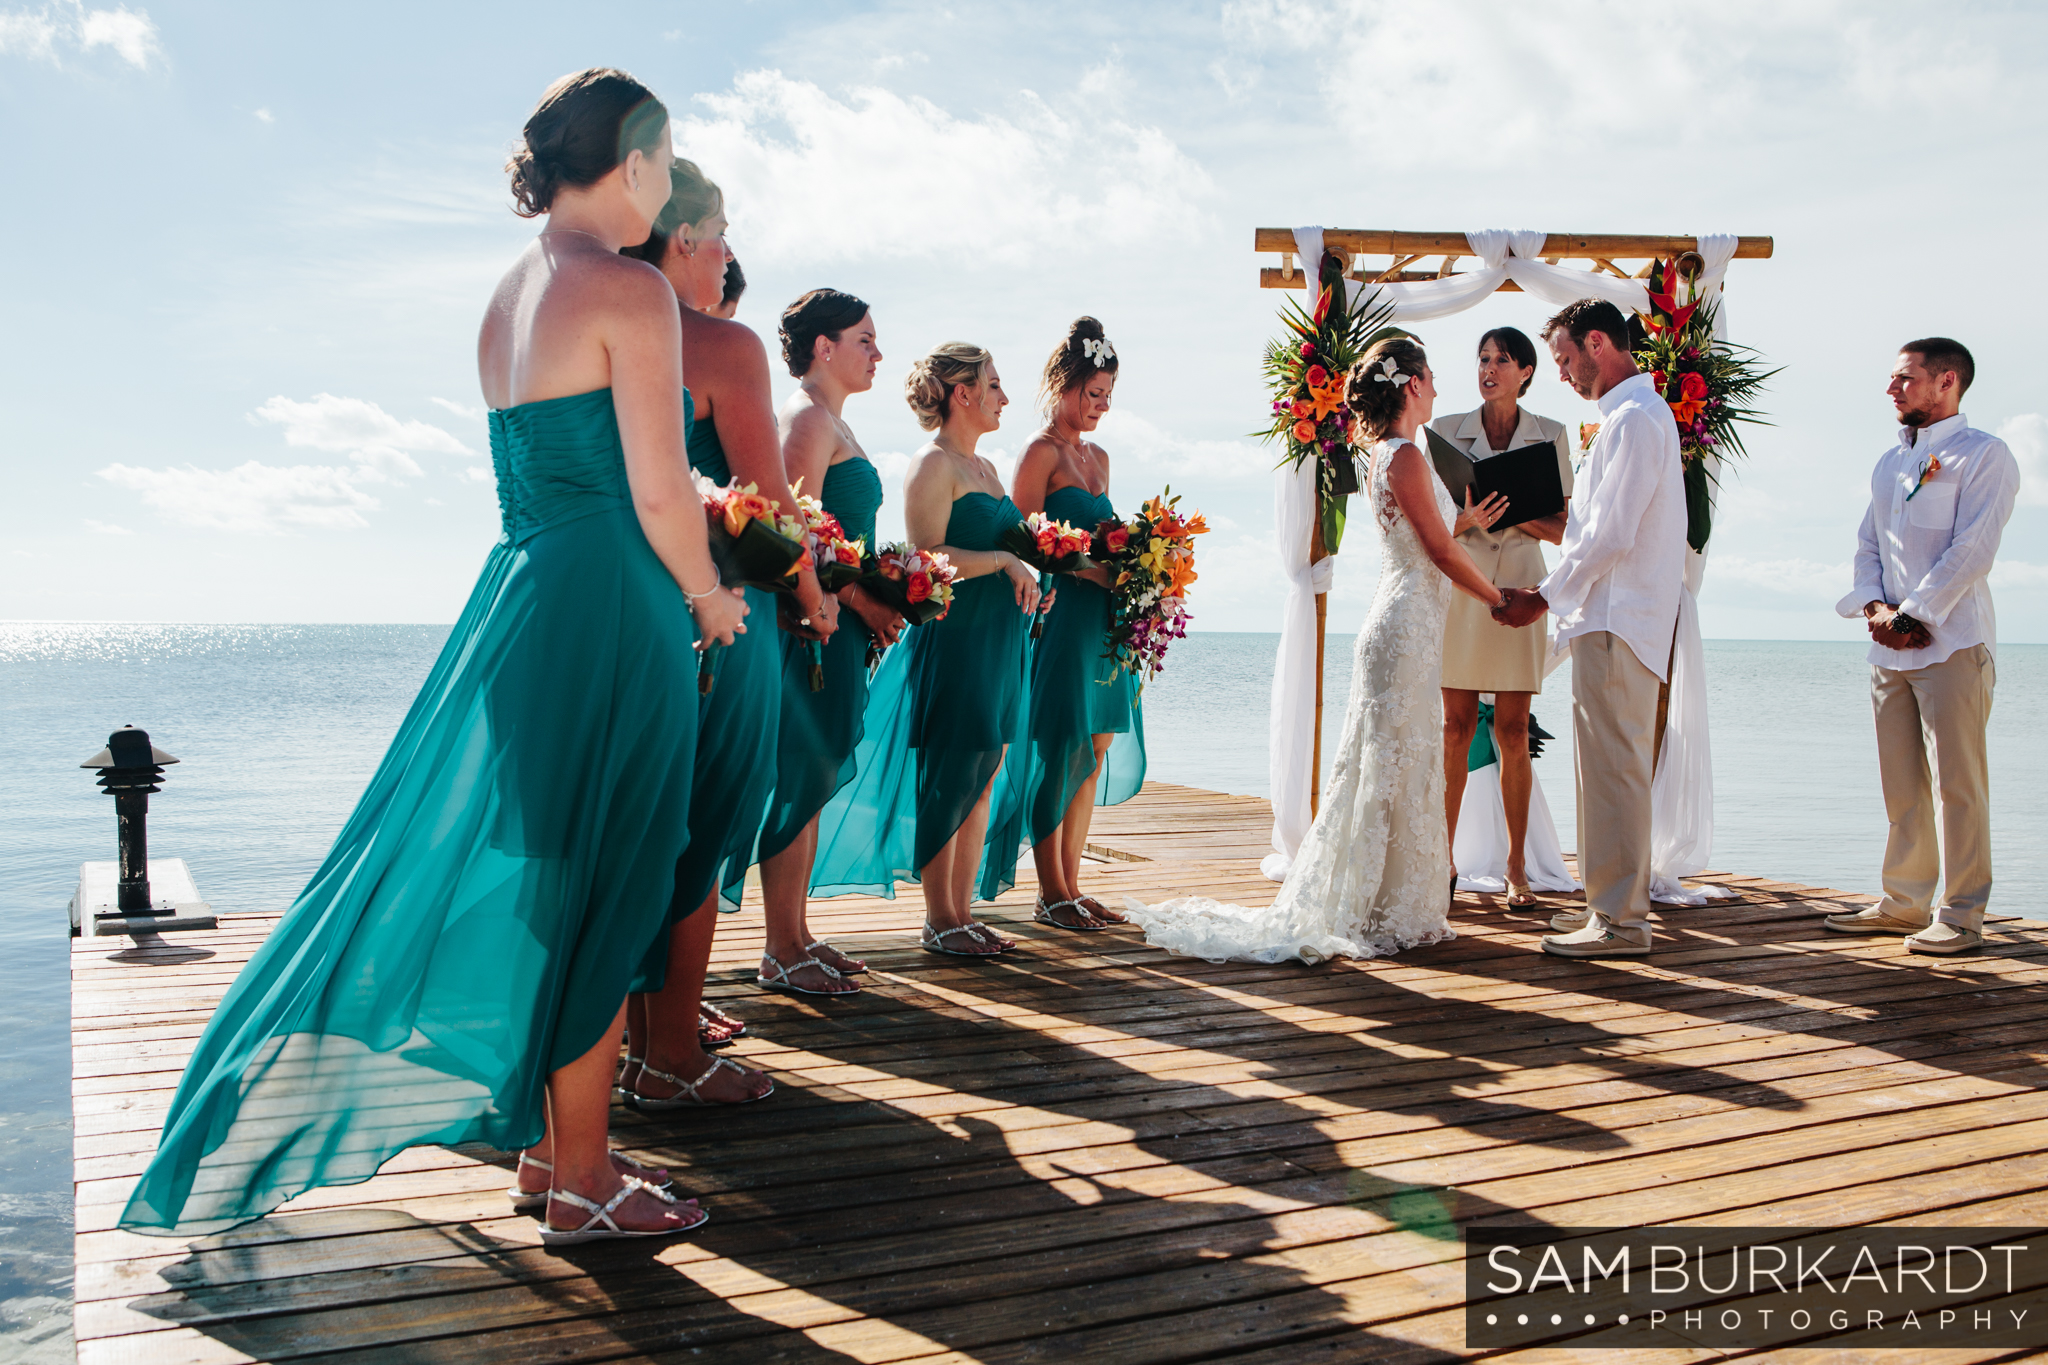 samburkardt_key_west_wedding_marathon_florida_summer_beach_ocean_front_0029.jpg